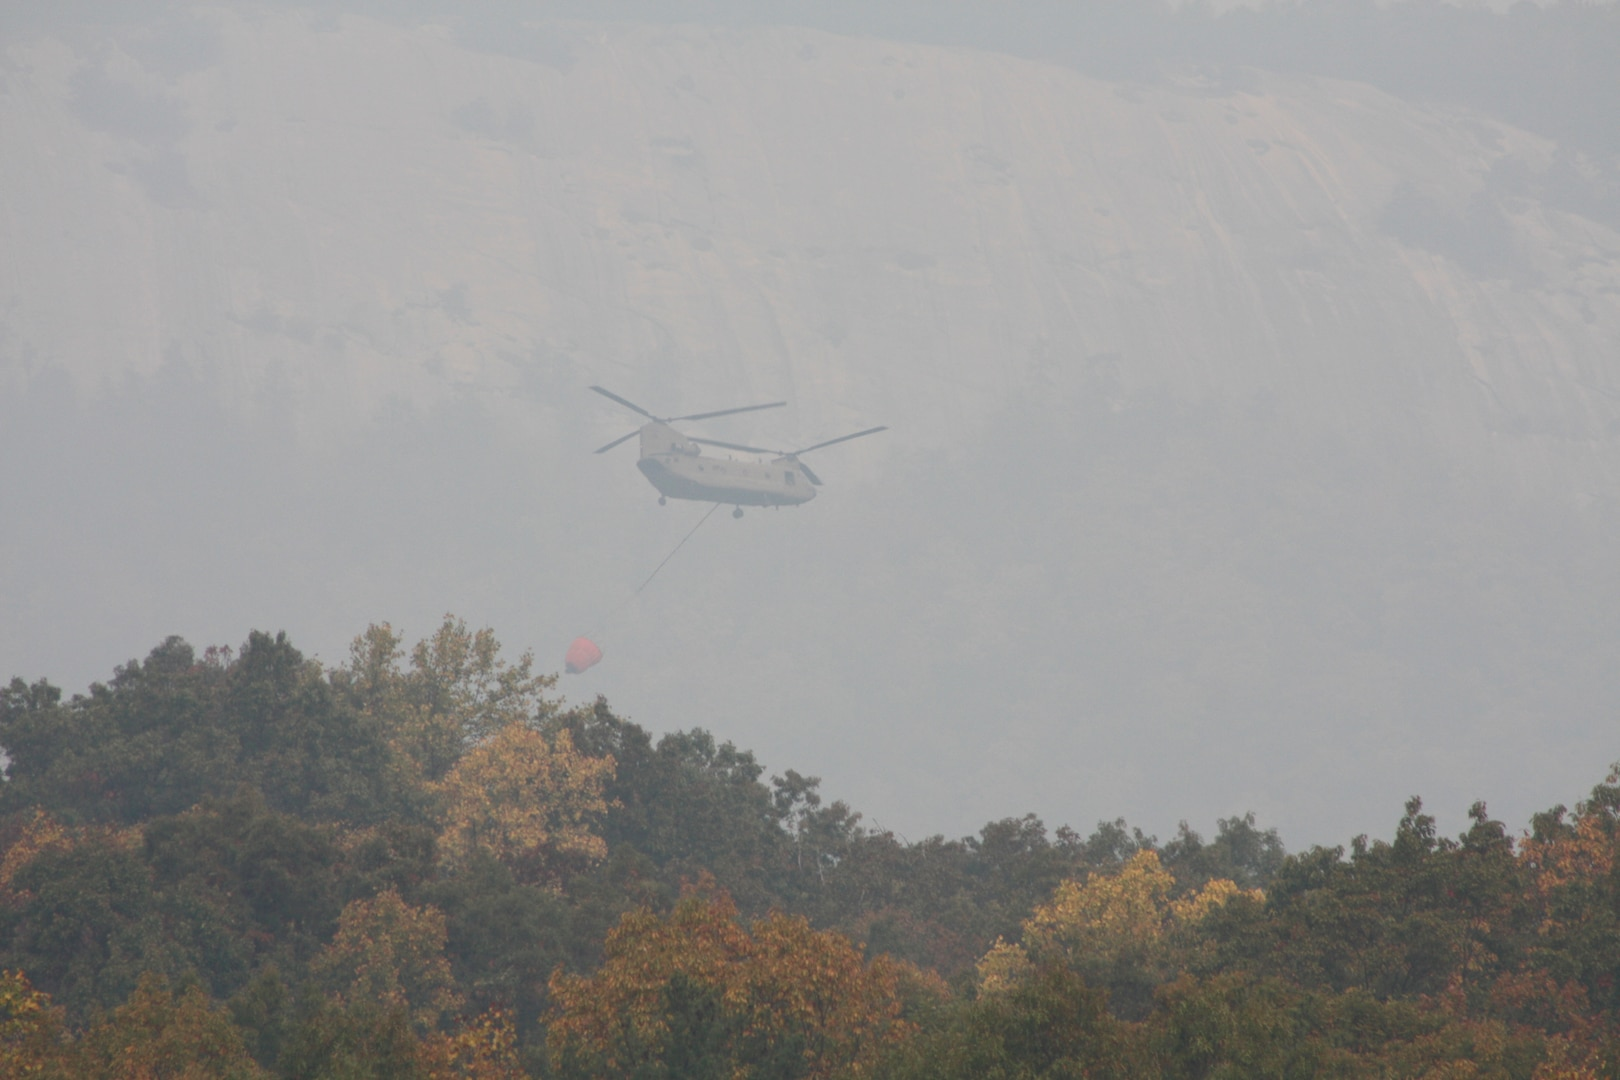 A South Carolina Army National Guard CH-47 Chinook from Det. 1, Bravo Company, 2-238th General Support Aviation Battalion with Soldiers from Donaldson Field in Greenville, South Carolina, responded to a request for help from the South Carolina Forestry Commission to contain fires burning near the top of Pinnacle Mountain in in Pickens County, South Carolina, Nov. 15, 2016.  The aircraft is equipped with a Bambi Bucket, which can be filled with any available water to be transported and dumped on the fire.